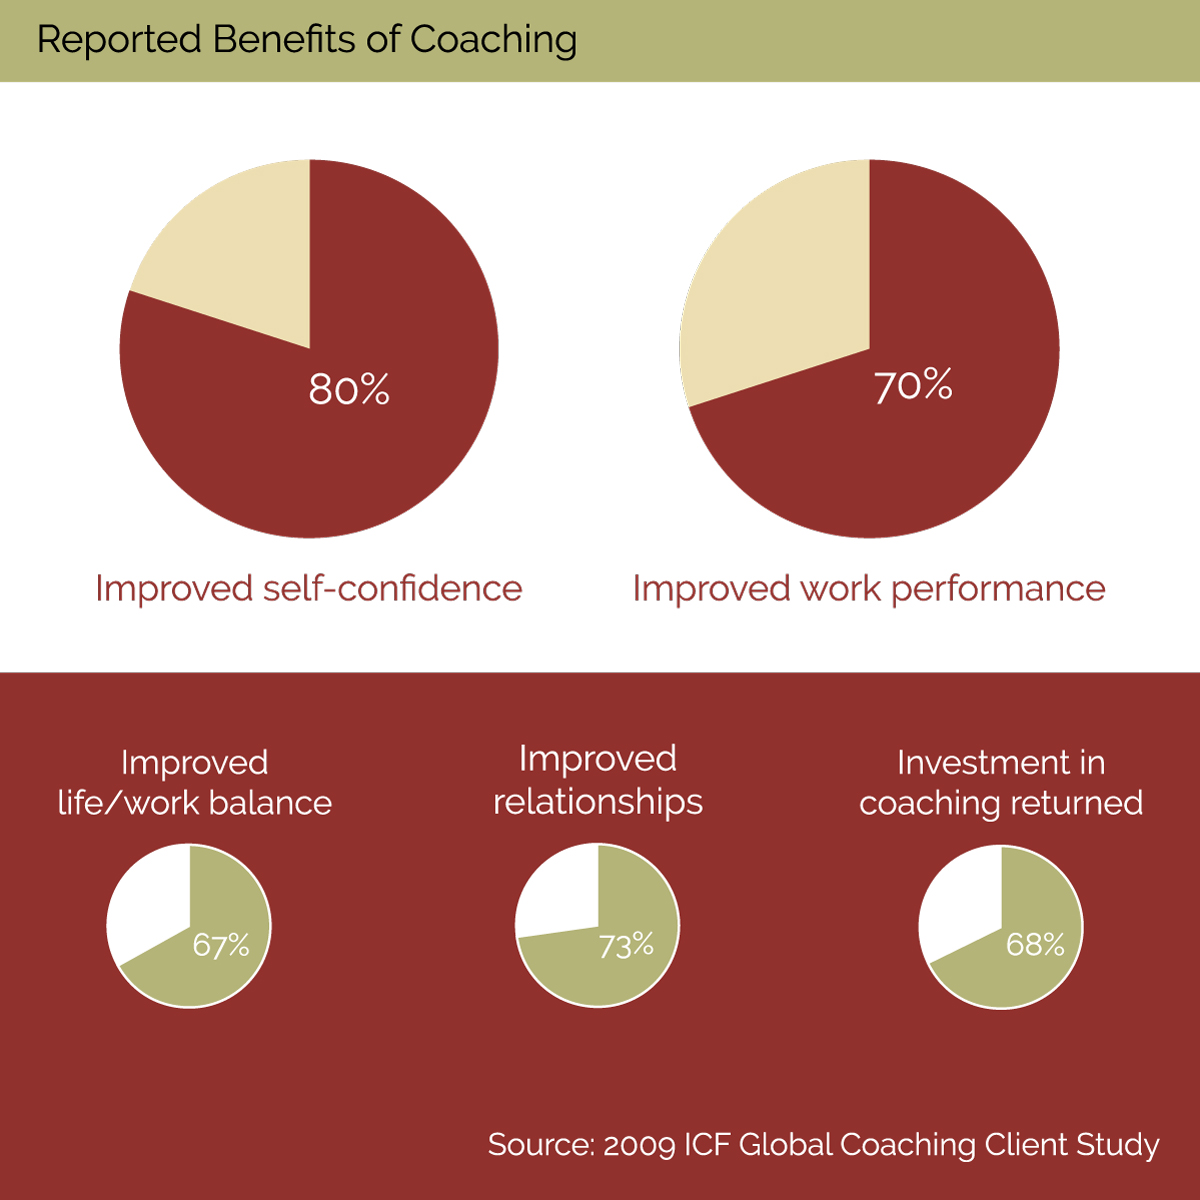 Find more benefits of coaching  here .